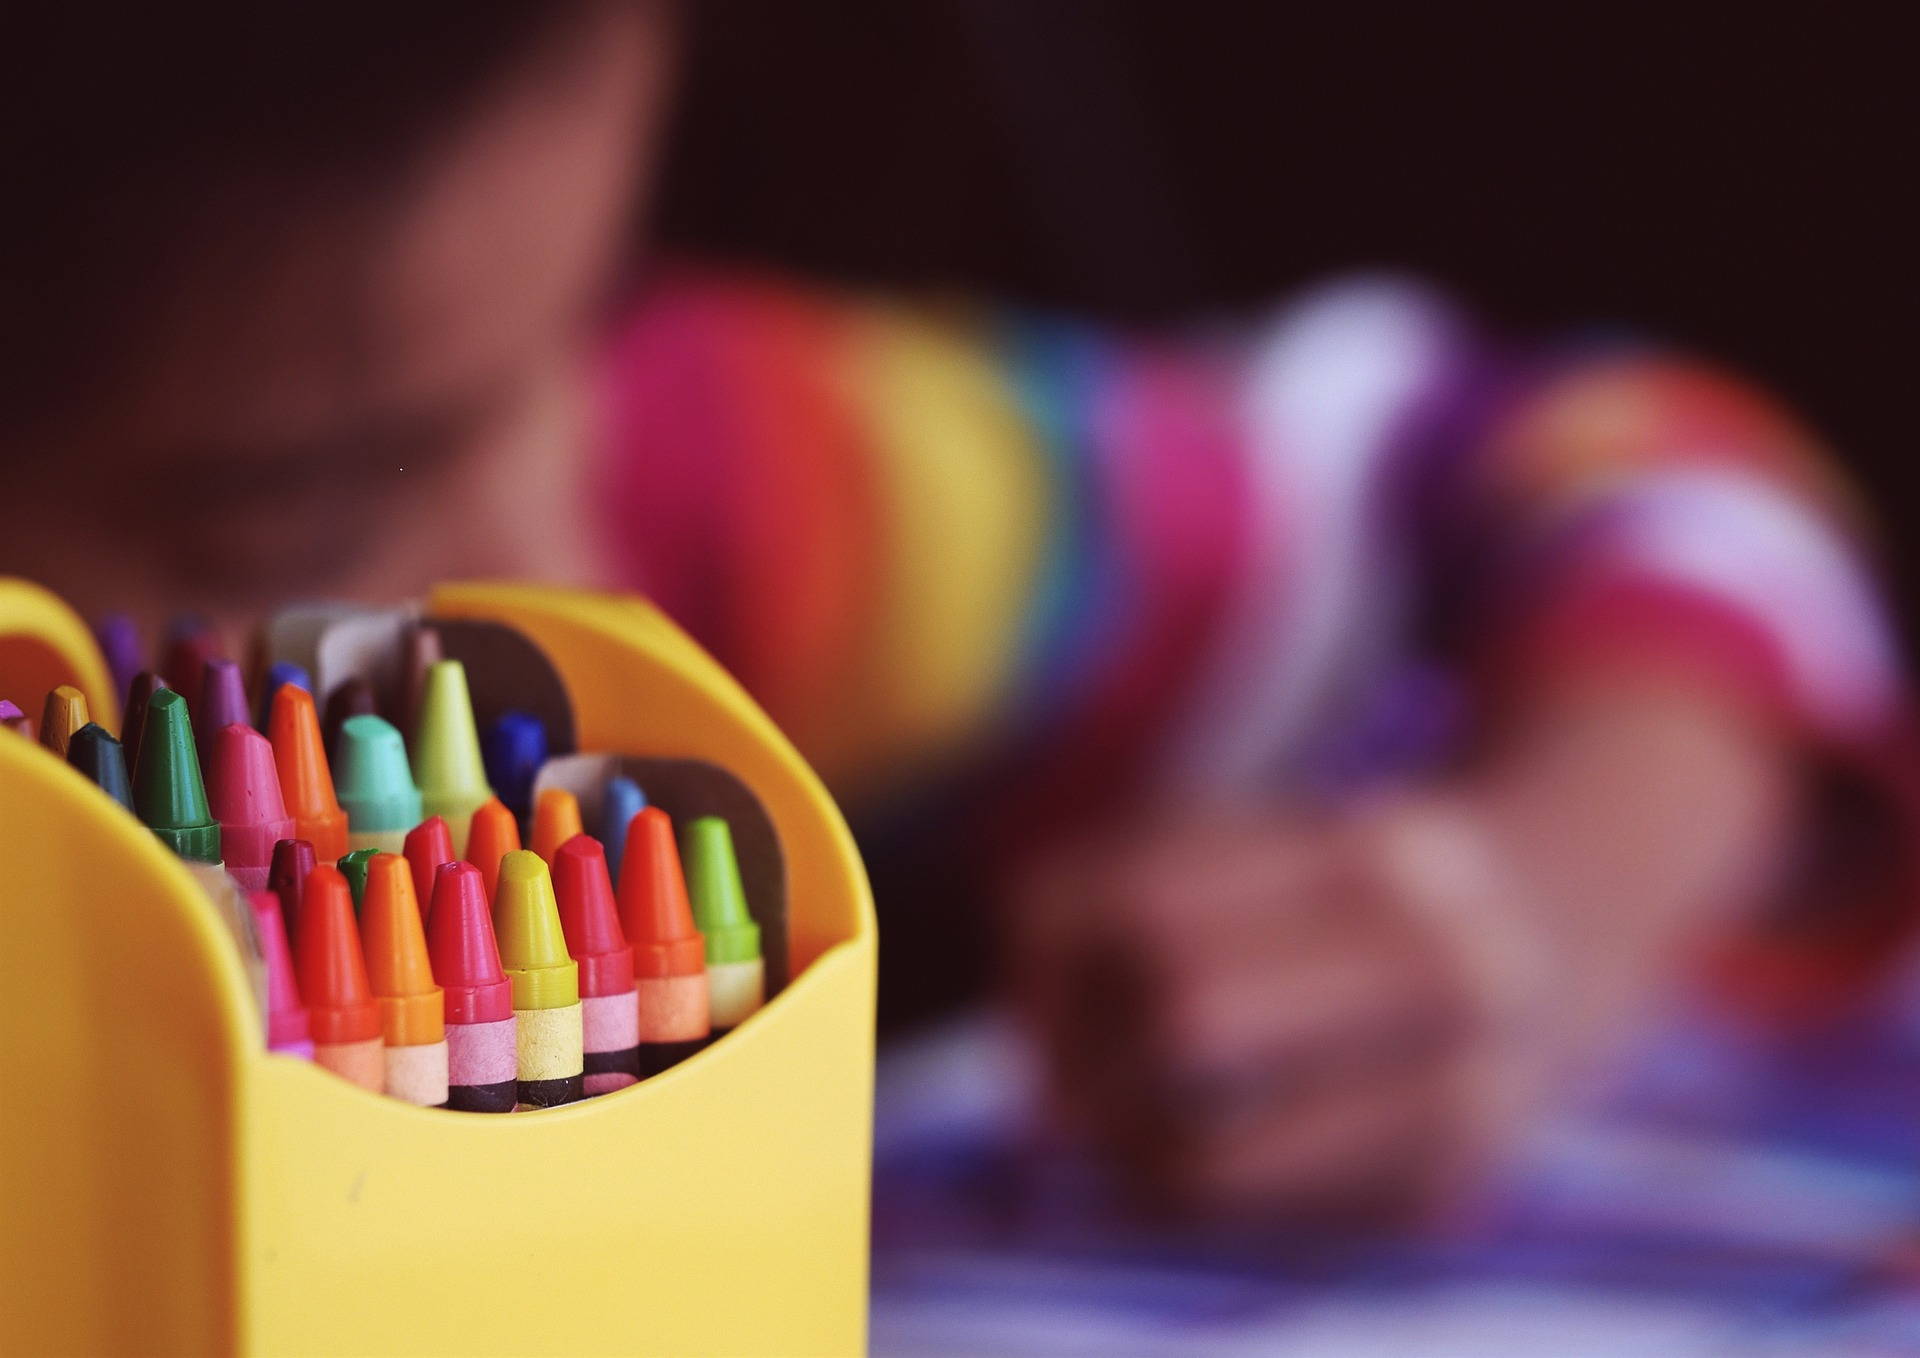 picture of a box of crayons.